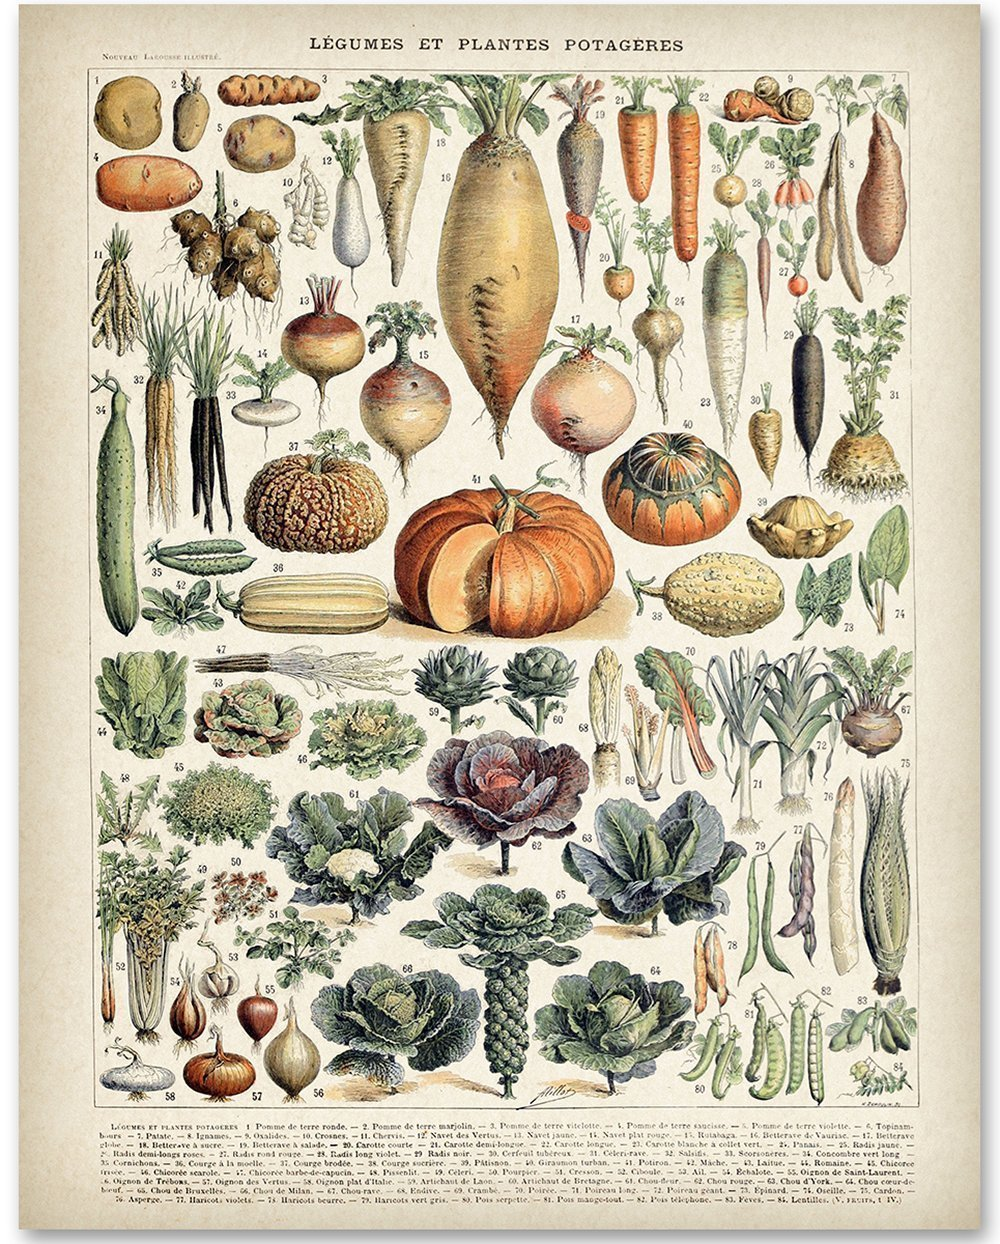 Antique Heirloom Vegetables - 11x14 Unframed Art Print - Great Gift for Kitchen Decor by Personalized Signs by Lone Star Art